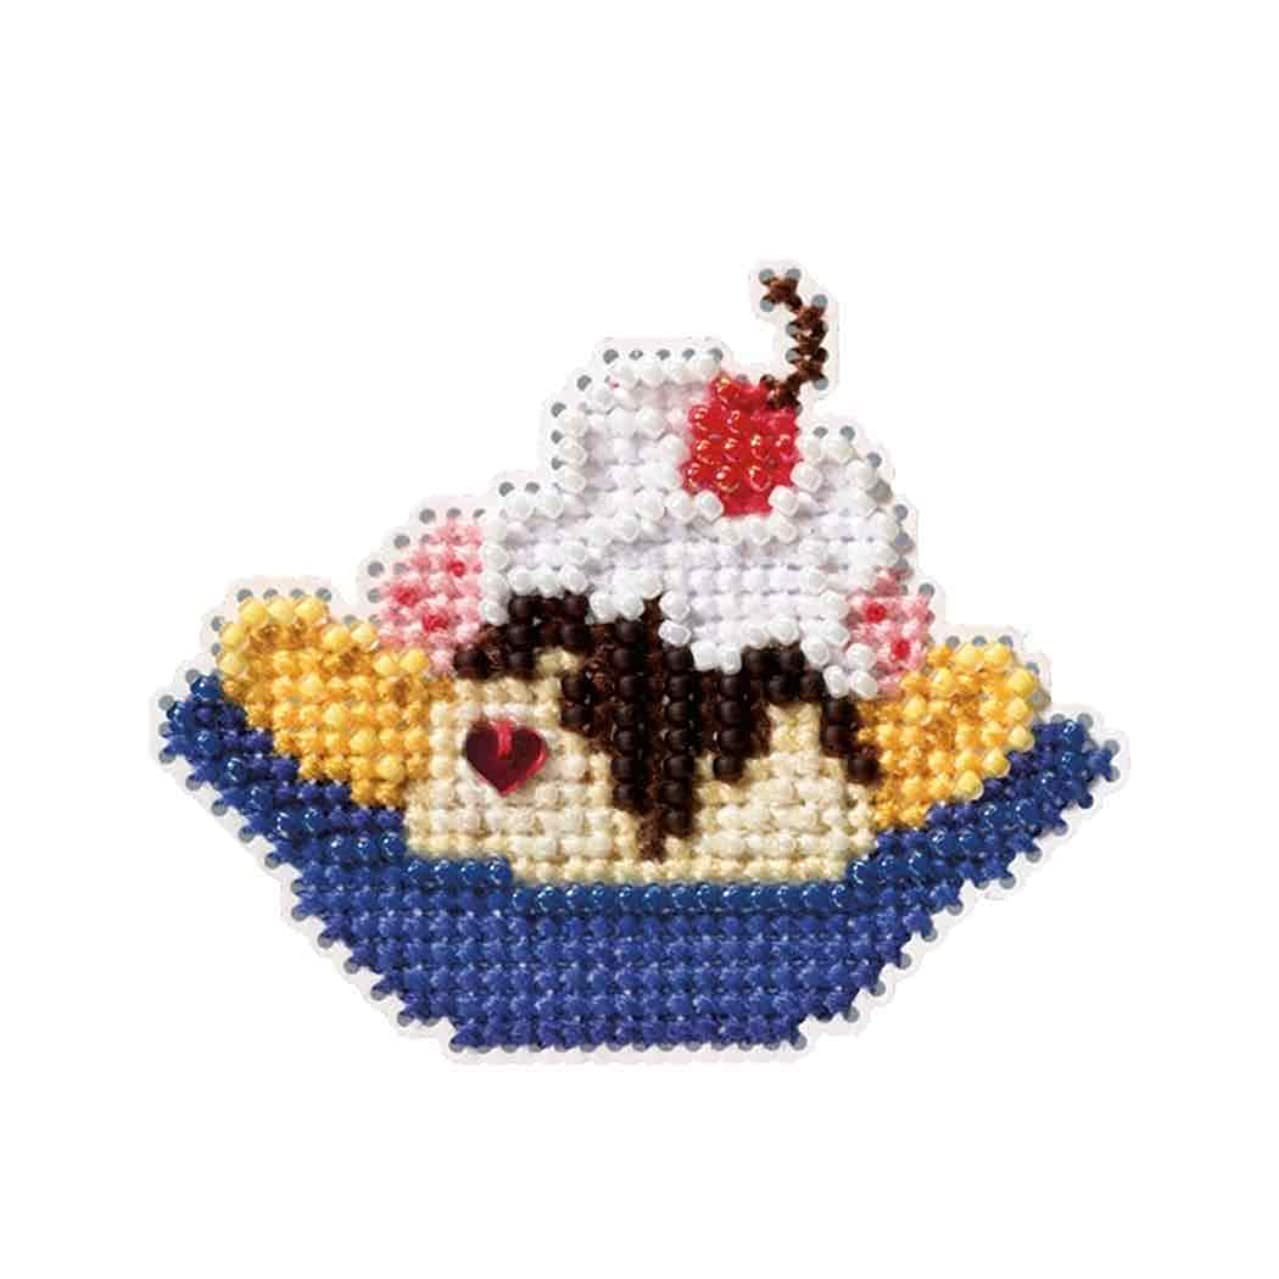 Banana Split Beaded Counted Cross Stitch Ornament Kit Mill Hill 2009 Spring Bouquet MH18-9105